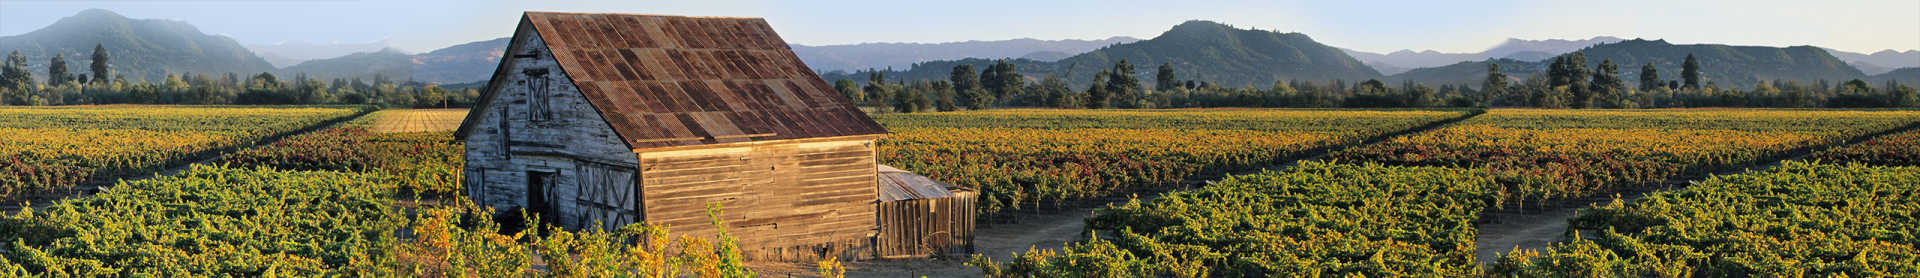 Image for Dry Creek Valley content section